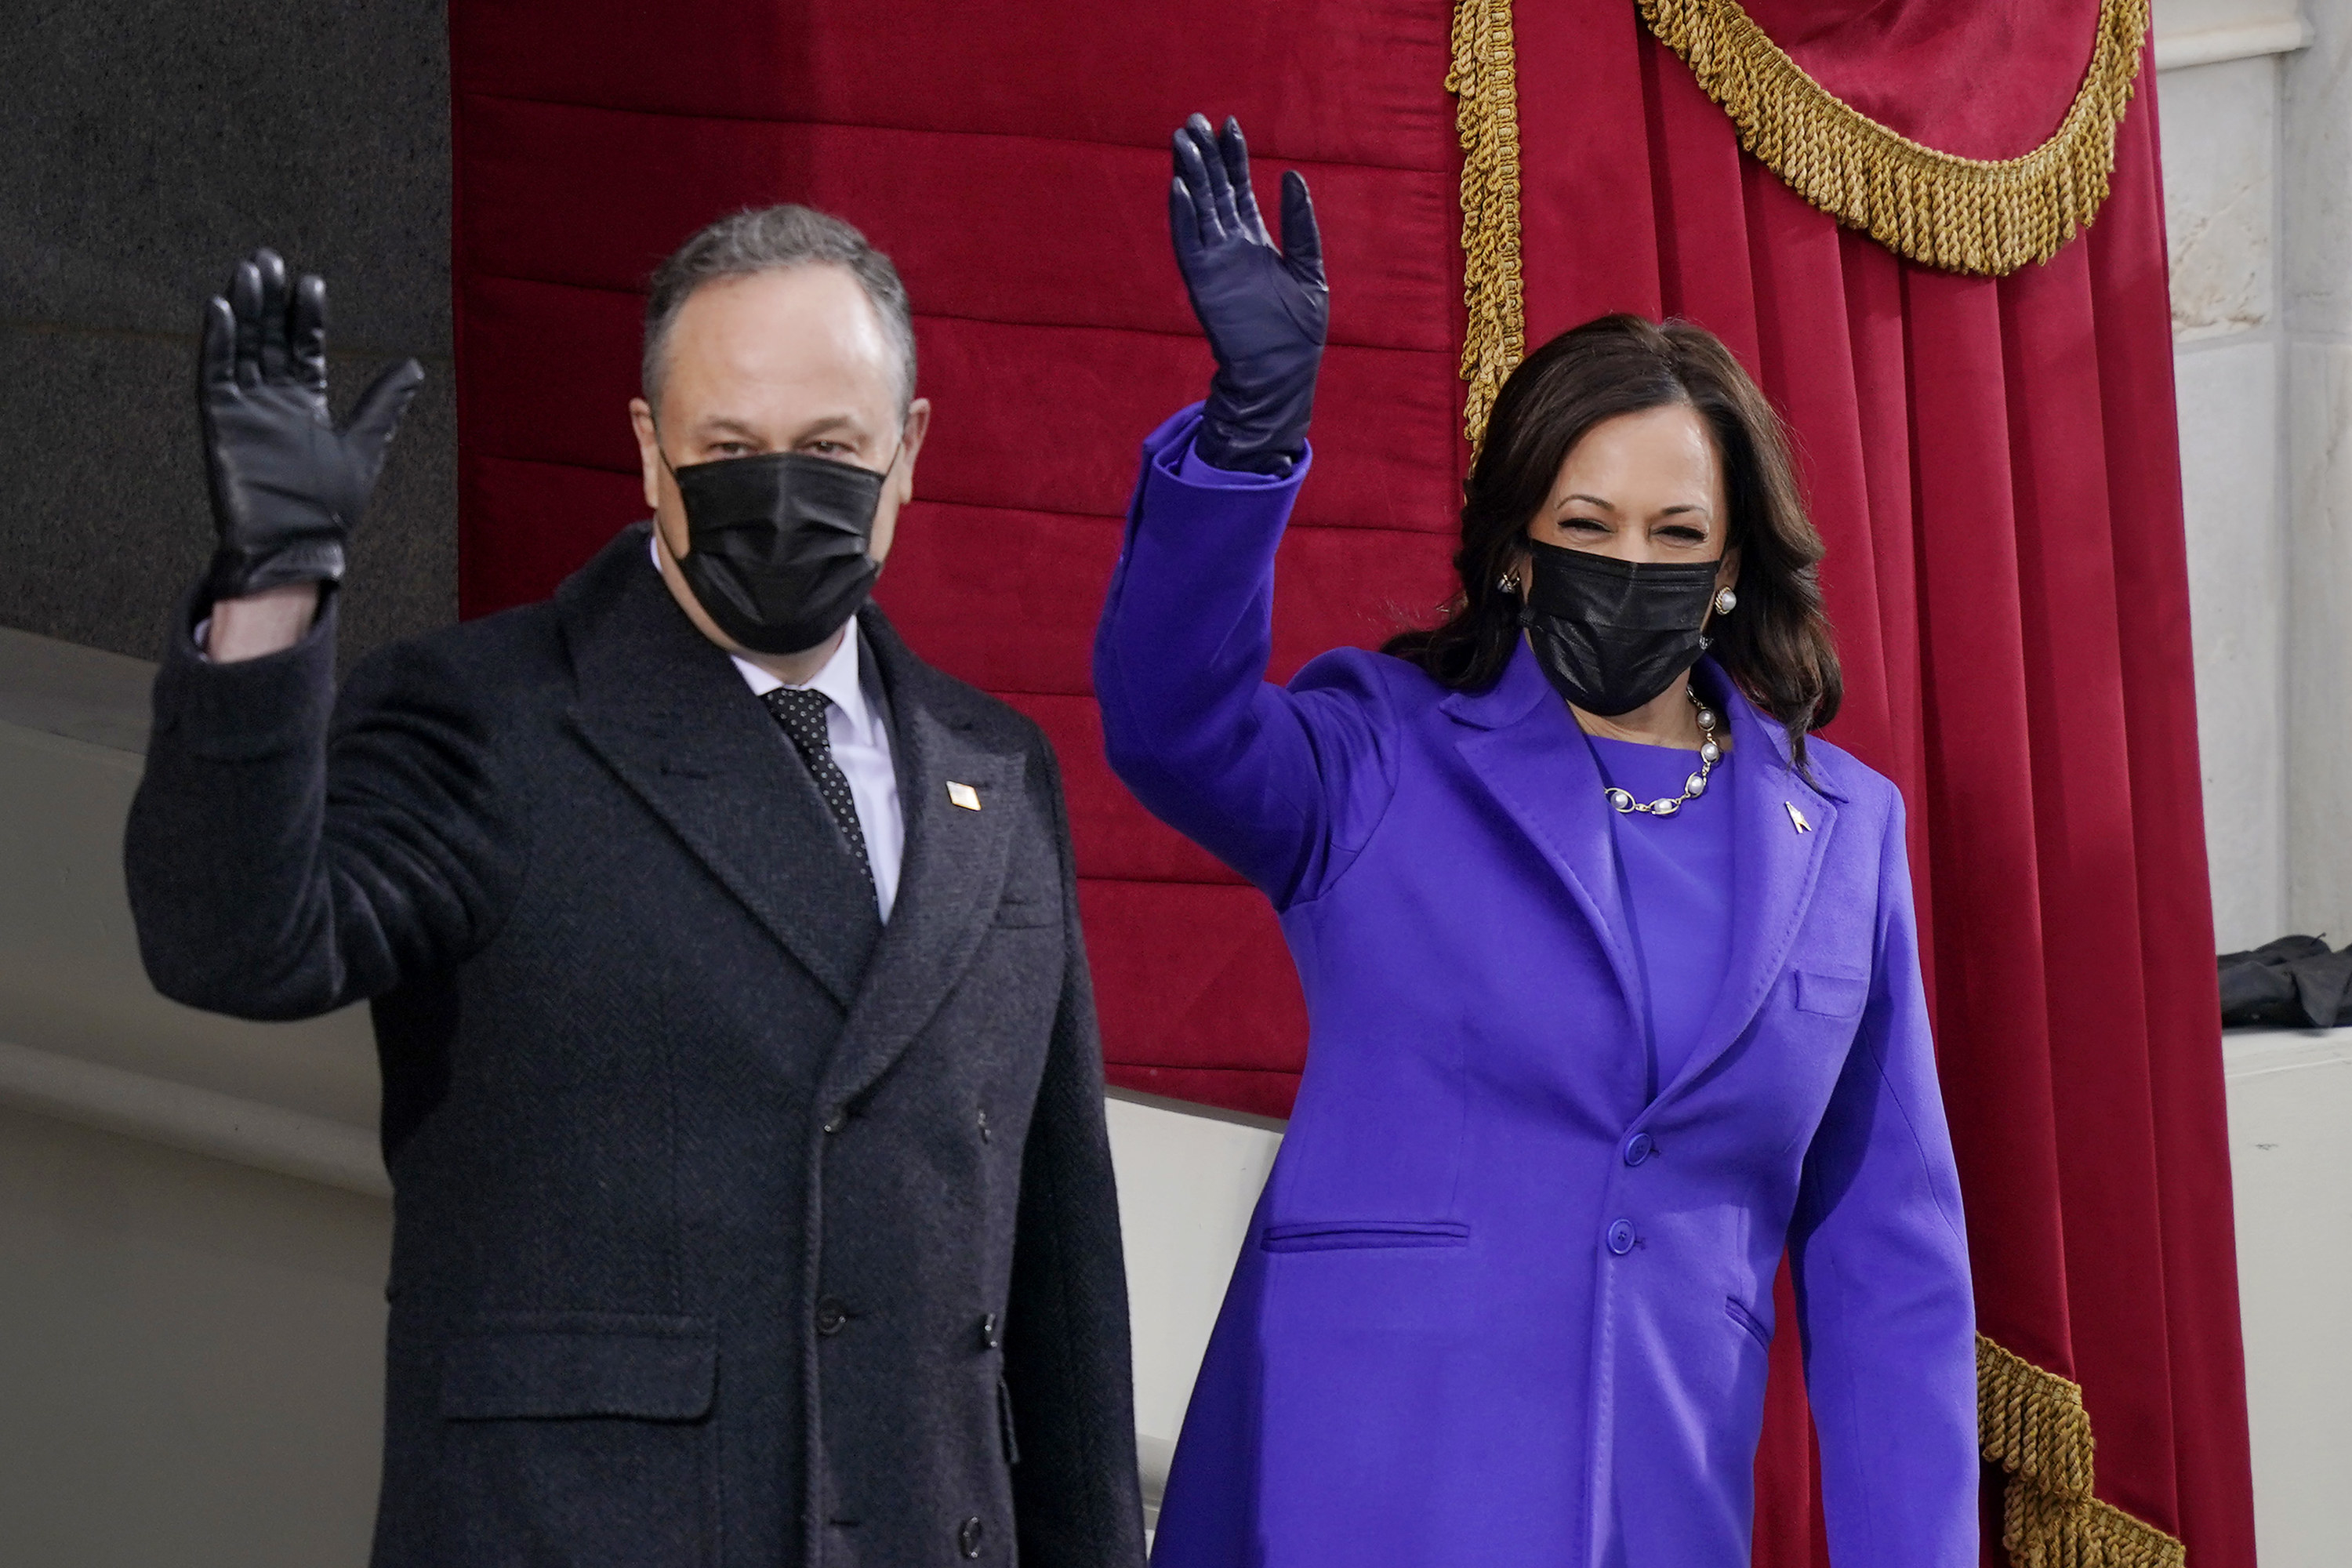 Vice President Kamala Harris in a purple suit and black face mask and her husband Doug Emhoff in a black face mask, standing and waving at the inauguration.